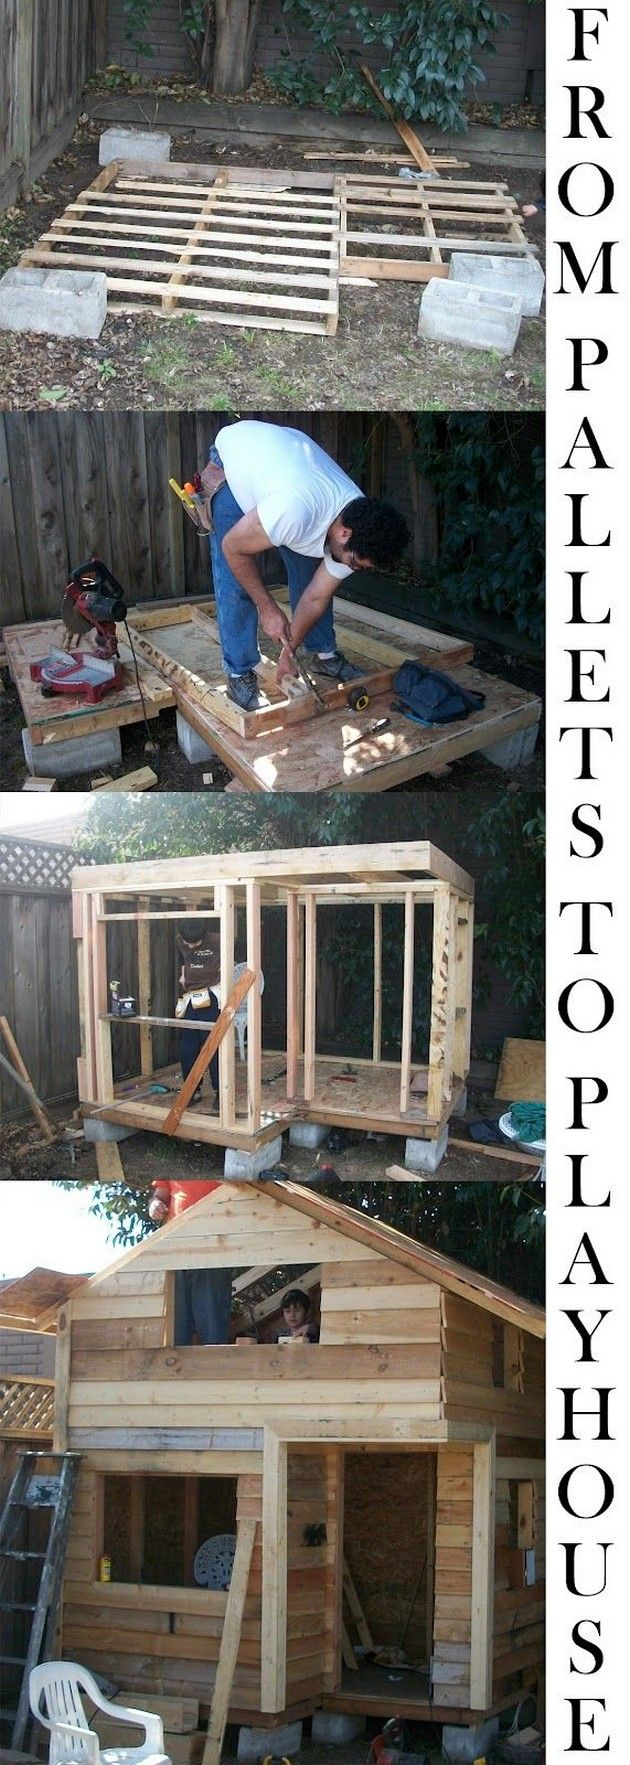 Amazing uses for Old Pallets (23 Pics)Vitamin-Ha | Vitamin-Ha